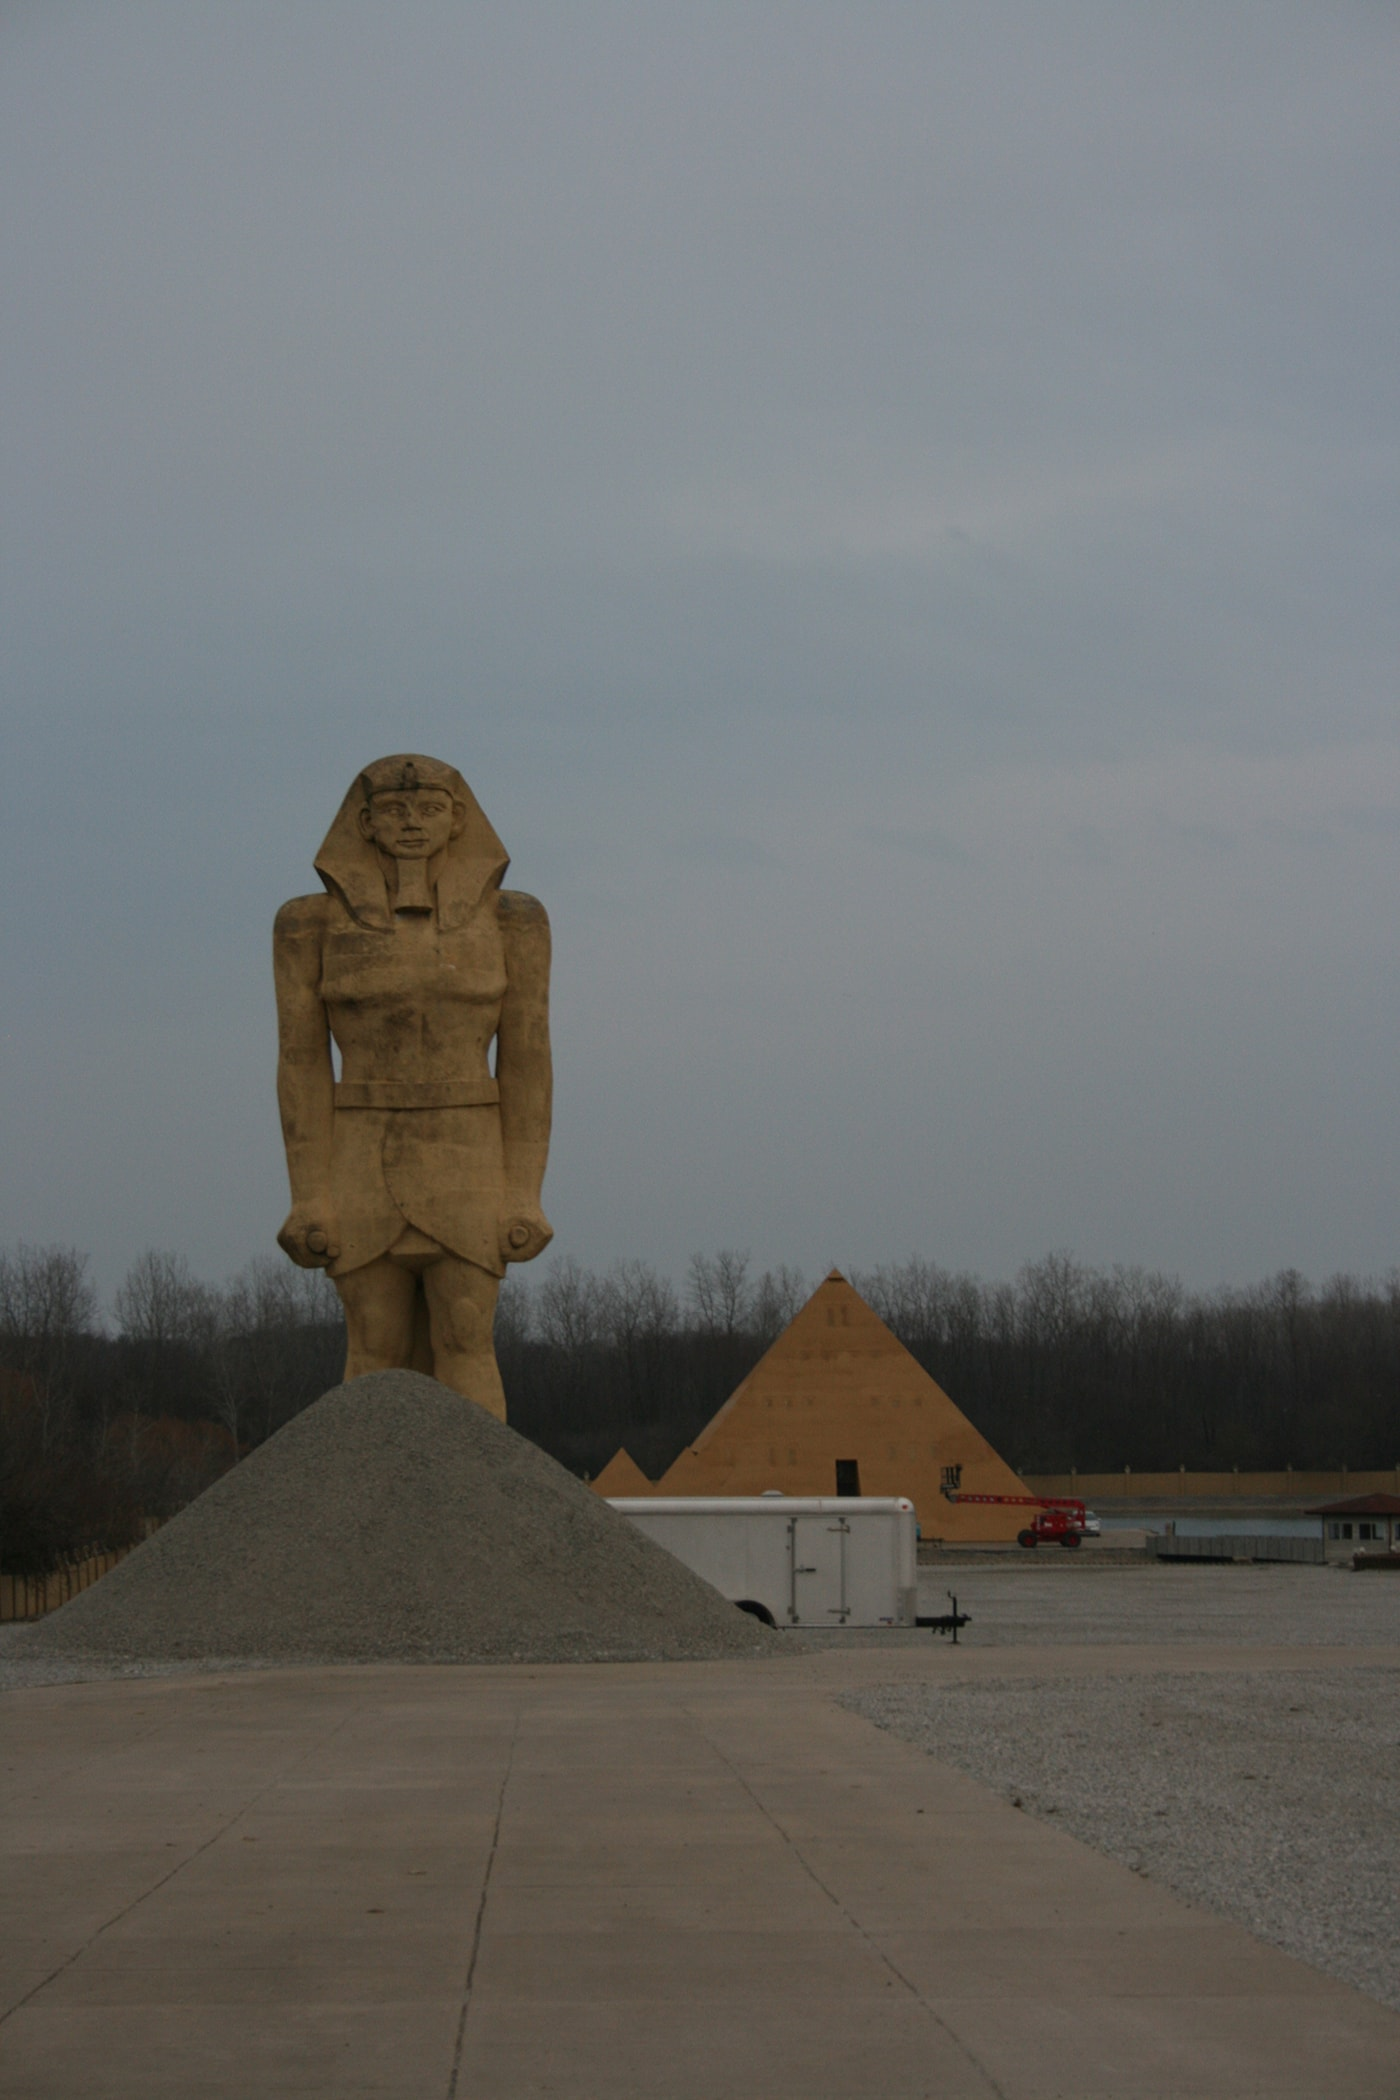 Gold Pyramid House in Wadsworth, Illinois